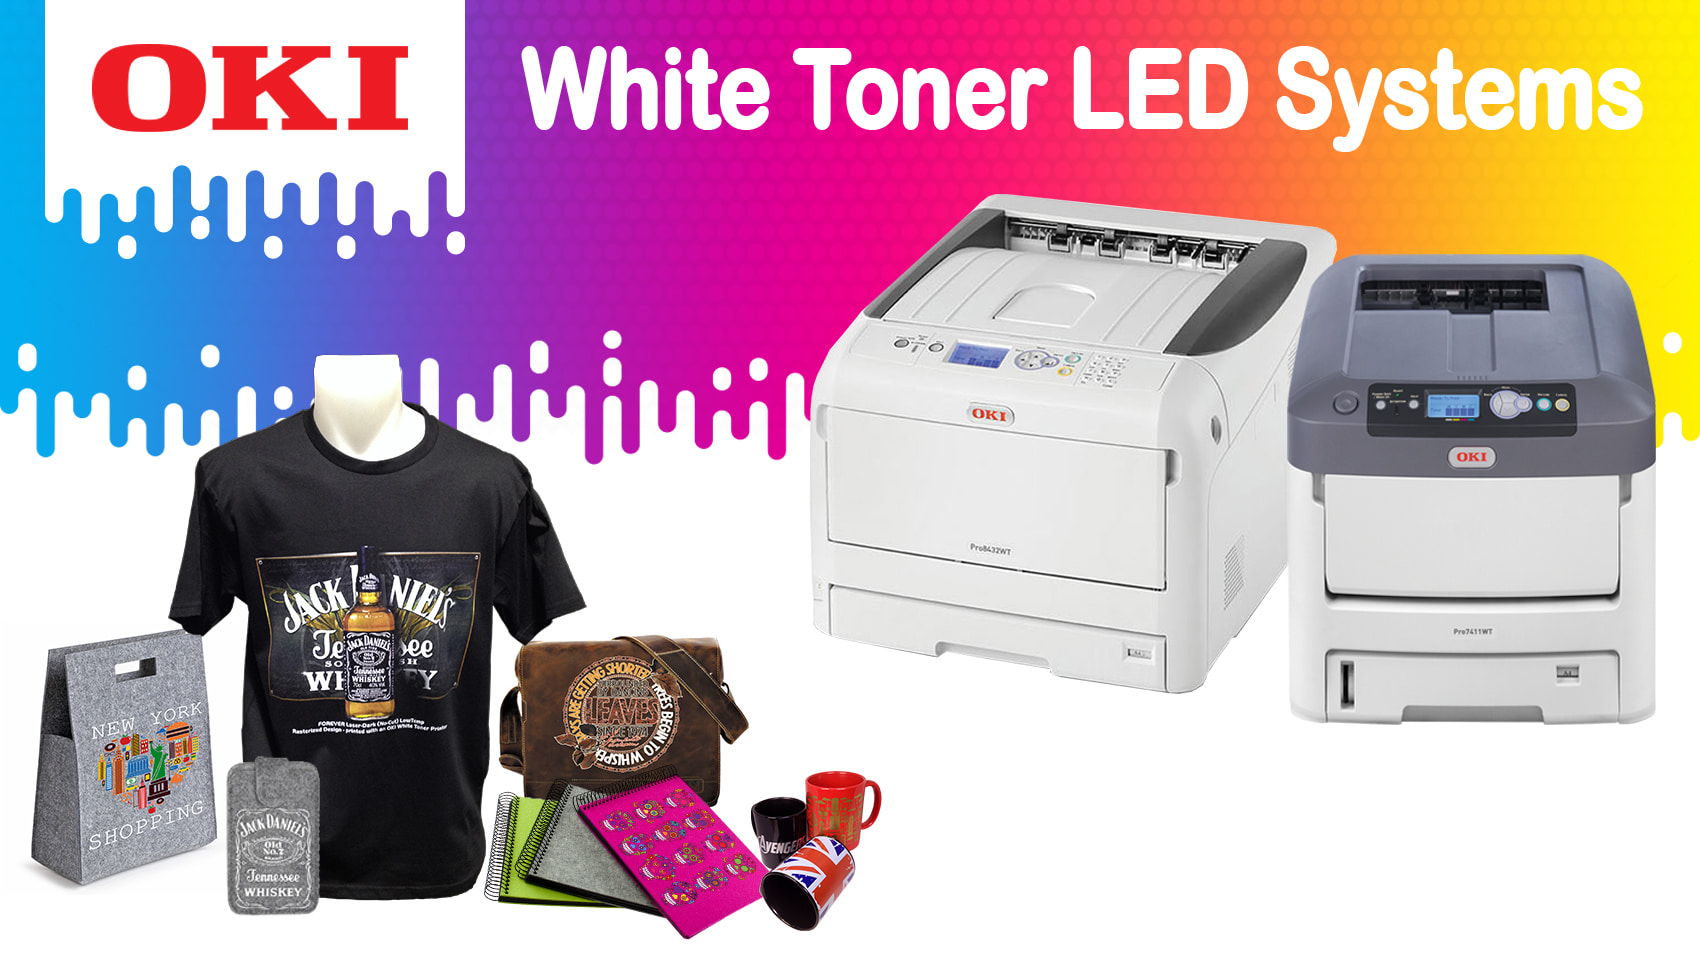 Wicked deals on white toner desktop solutions this August